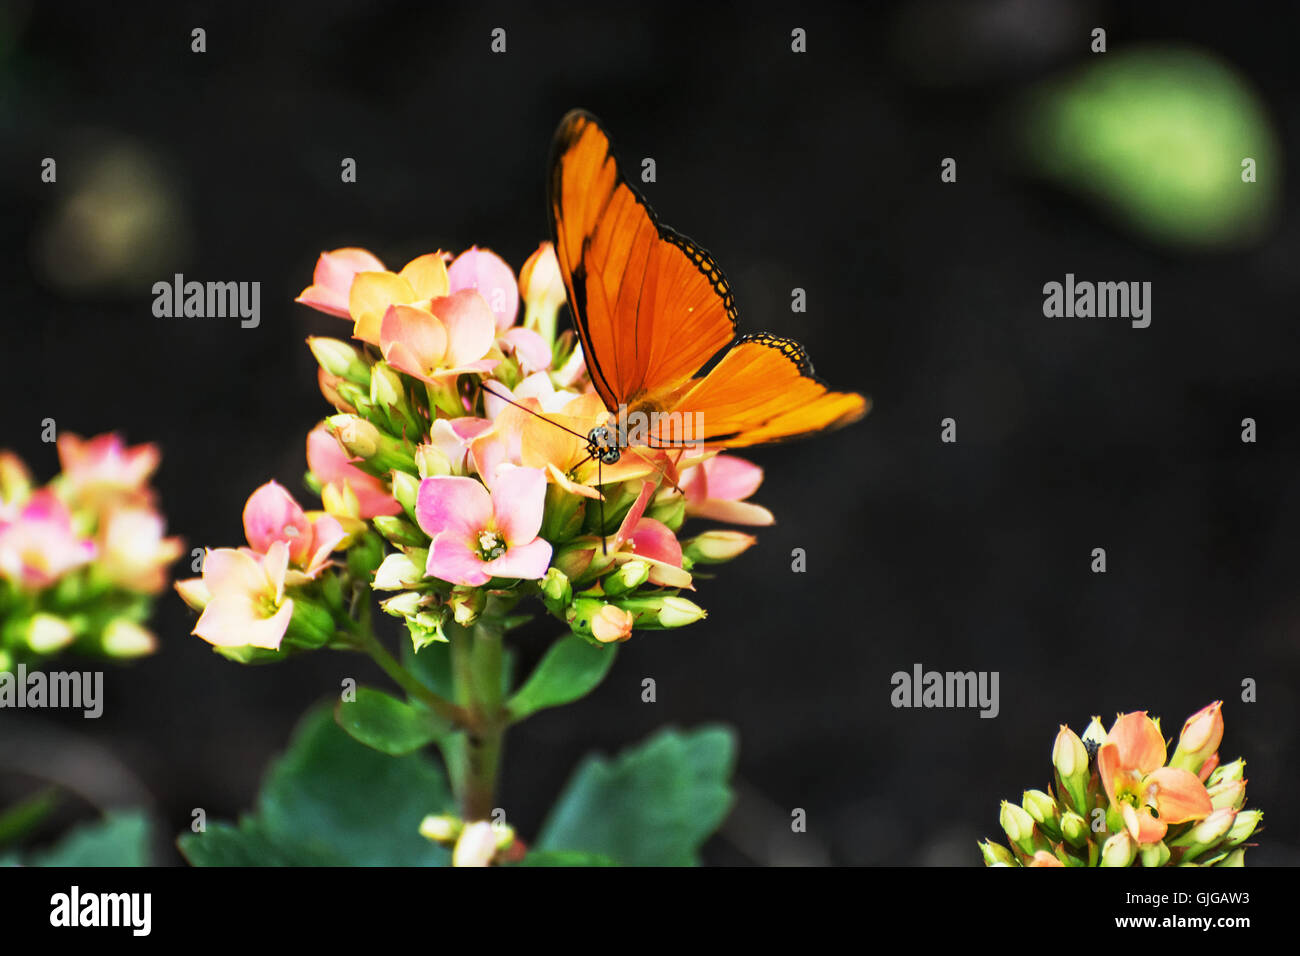 Beautiful orange butterfly pollinating small pink and yellow flowers. Fauna and flora. Seasonal natural scene. Beauty - Stock Image